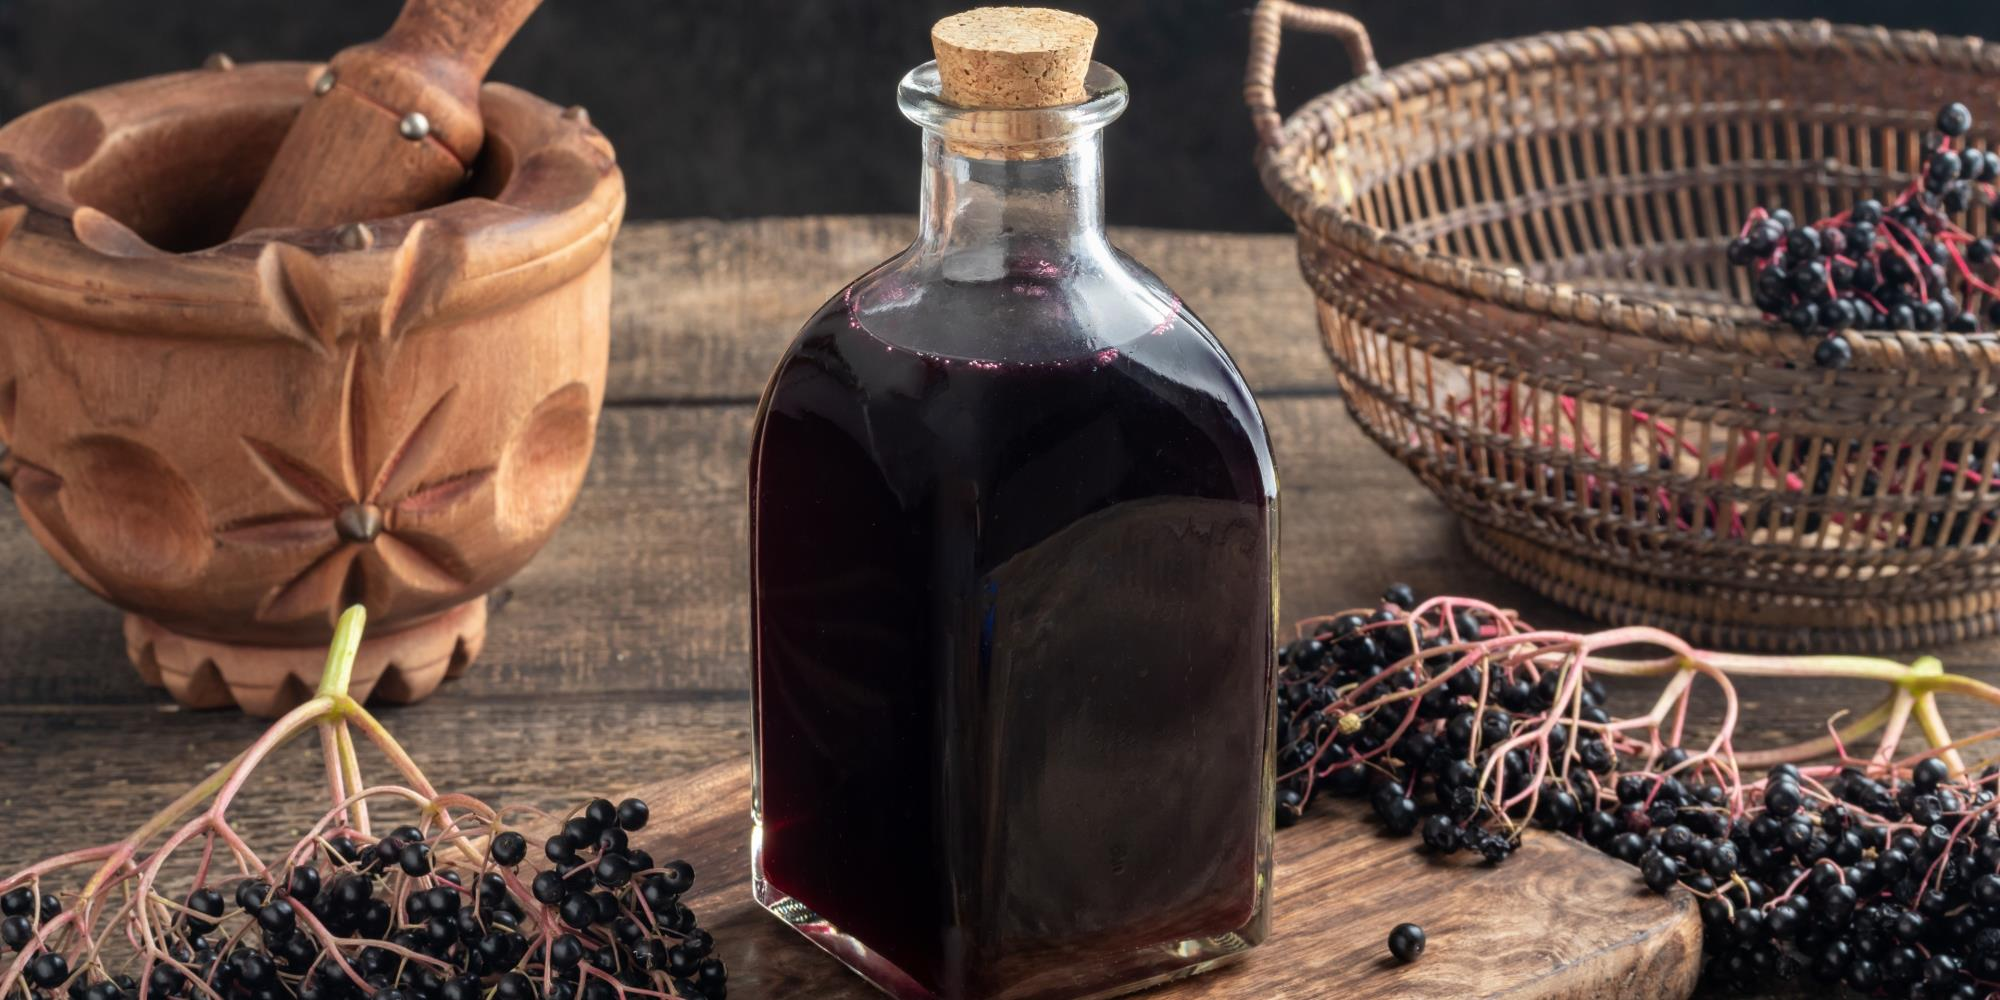 Does Elderberry Syrup help boost immunity?